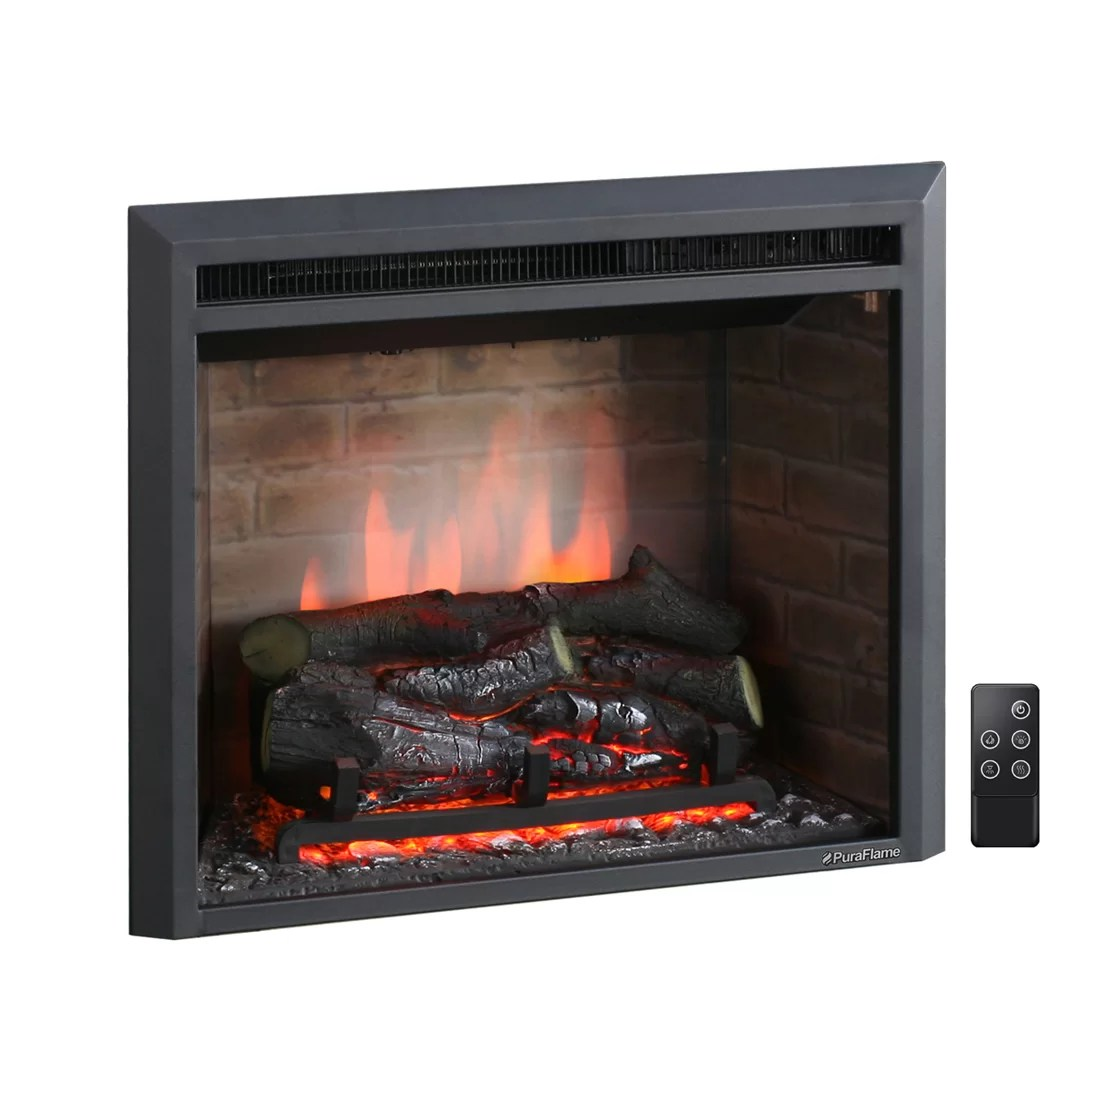 Puraflame 33 Black 7501500W Western Wall Mount Electric Fireplace Insert  Reviews  Wayfair